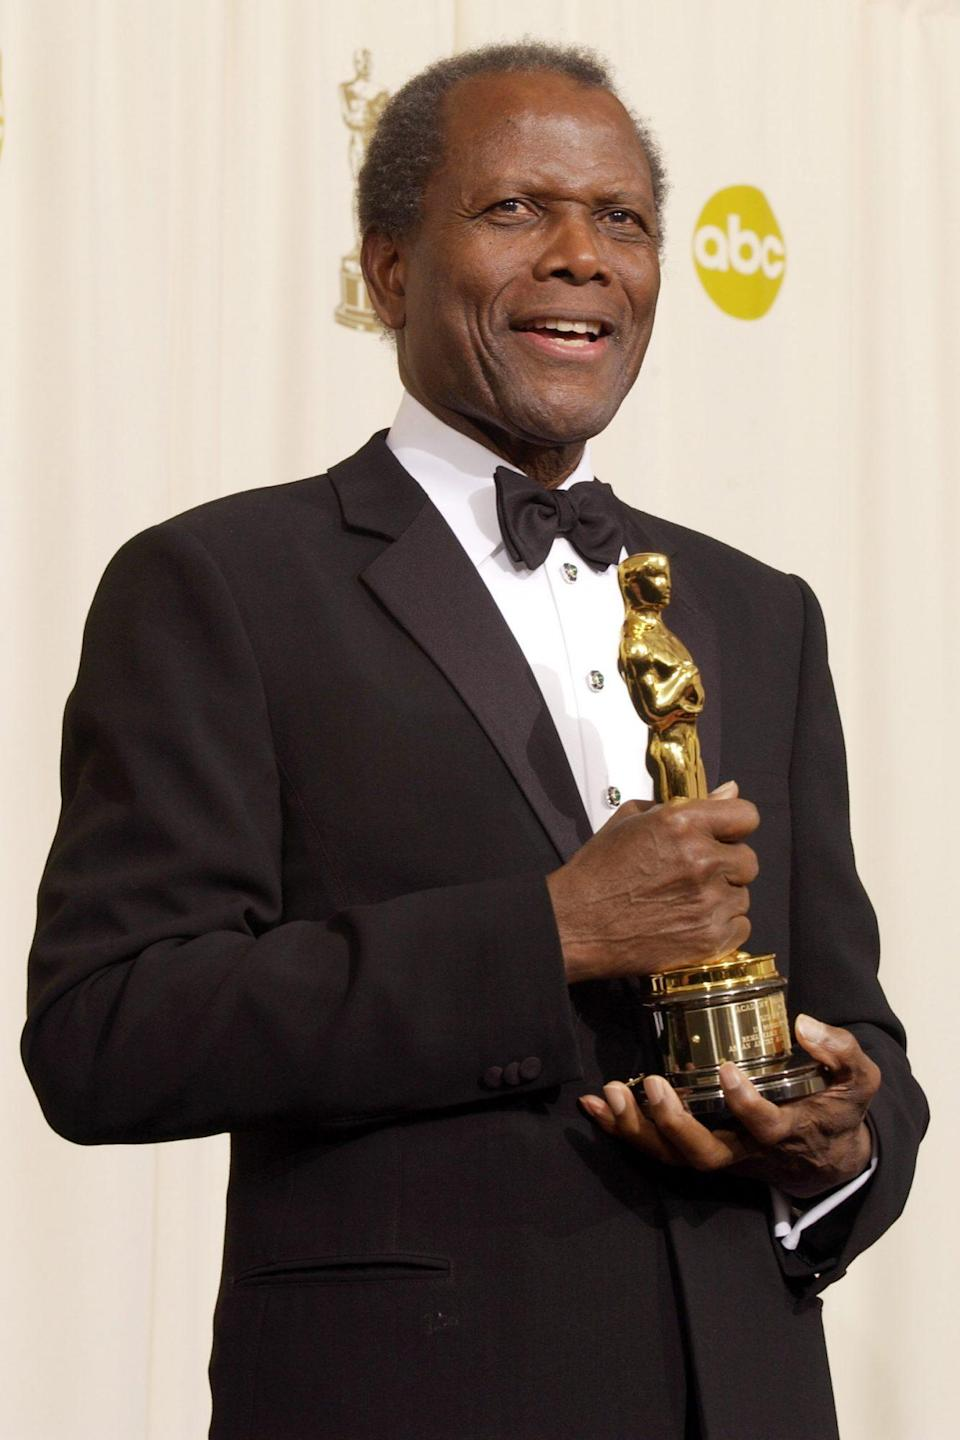 """<p>With his honorary Academy Award at the 2002 ceremony. He received a minutes-long standing ovation when walking to the mic, and in his moving acceptance speech, spoke of the whiteness of early Hollywood and how the """"unselfish"""" choices of a handful of filmmakers opened doors for him, allowing barriers to be broken for other Black actors and actresses. </p> <p>Poignantly that night, Denzel Washington and Halle Berry won the Best Actor and Best Actress awards; Berry was the first Black woman to ever win that honor.</p>"""